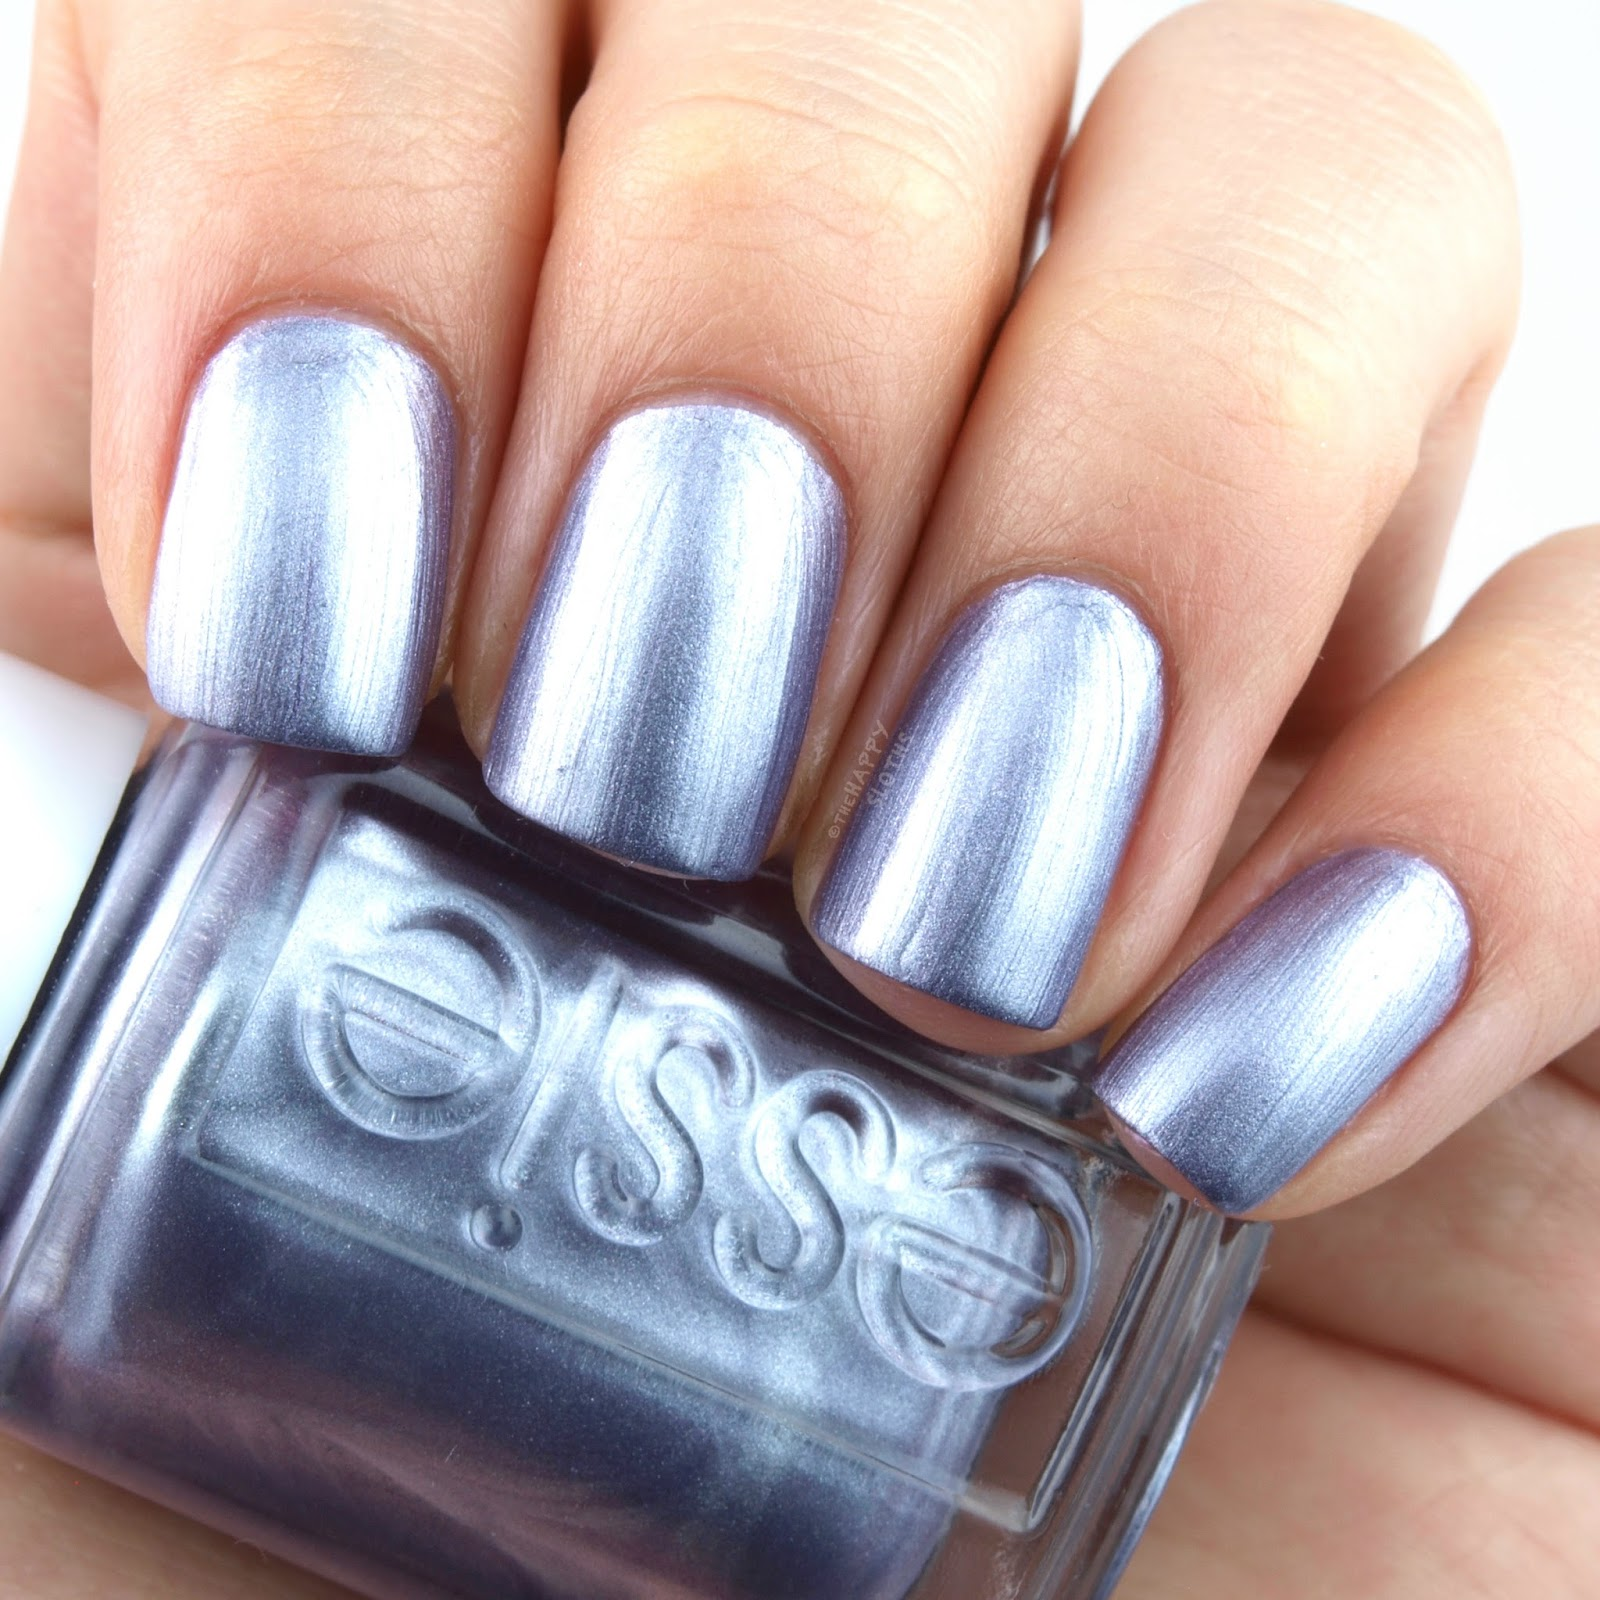 Essie Fall 2017 Collection | Girly Grunge: Review and Swatches